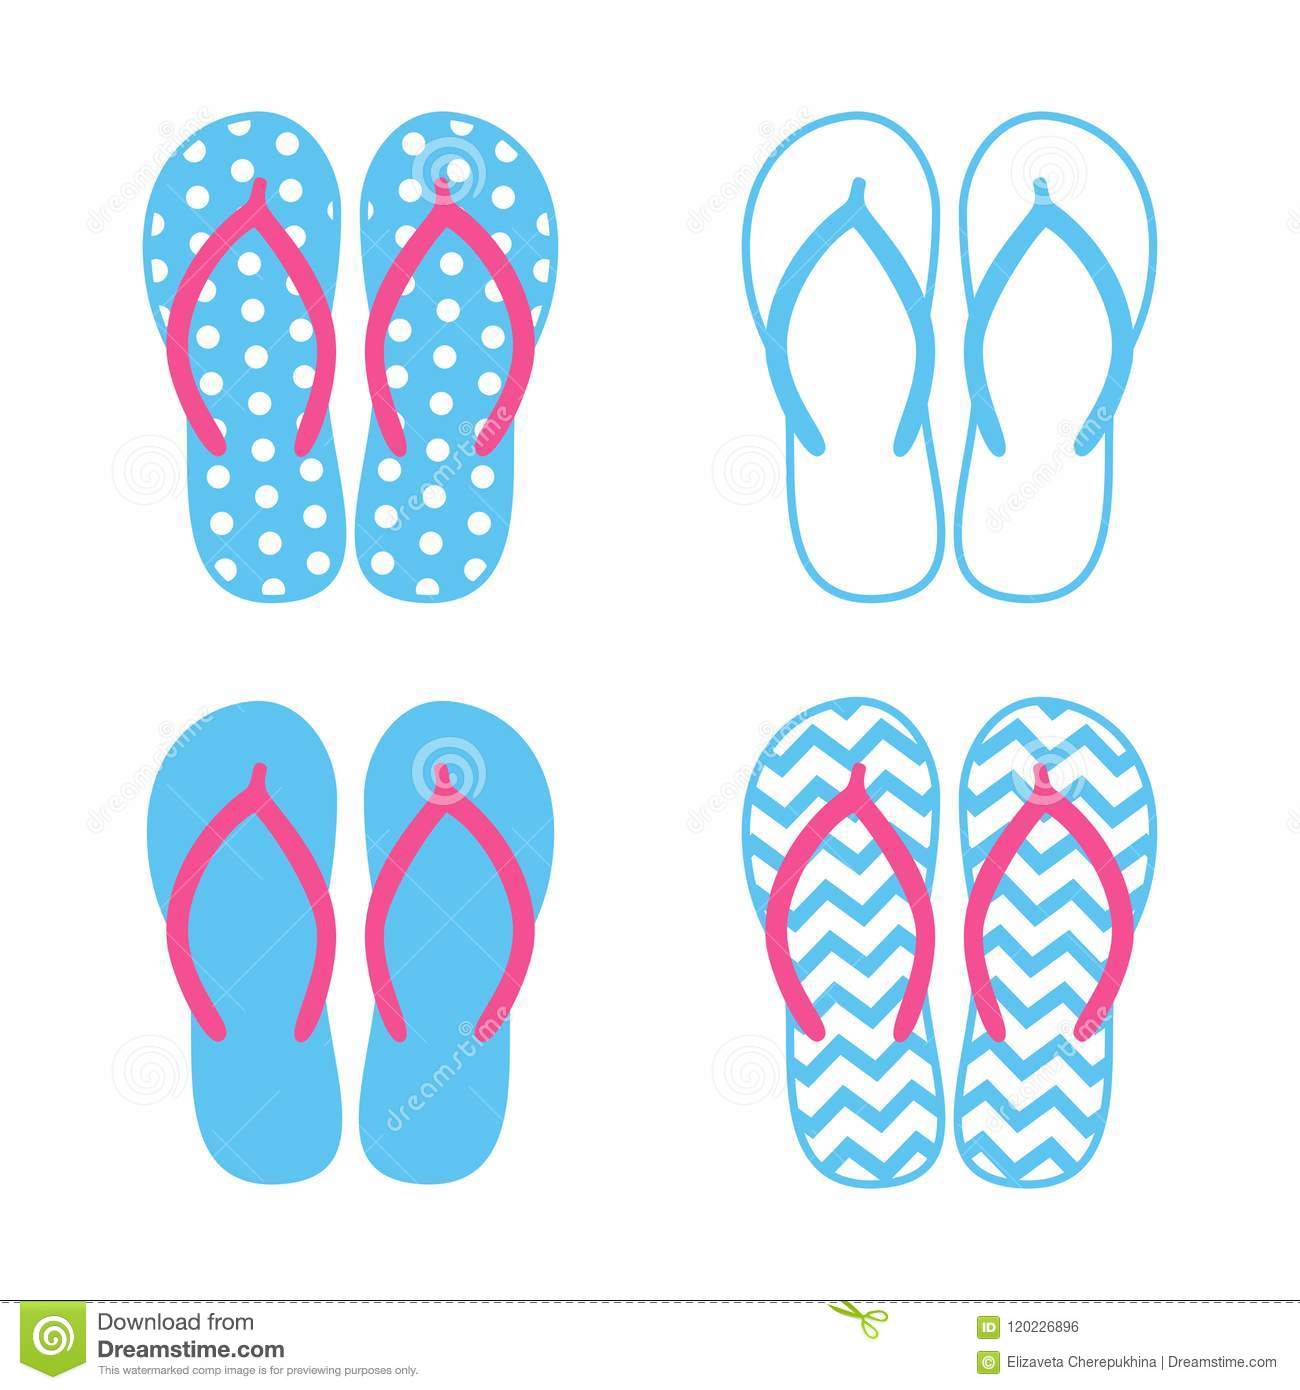 00157c4da Royalty-Free Vector. Colorful flip flops. Beach slippers. Sandals. Vector  icon isolated on white